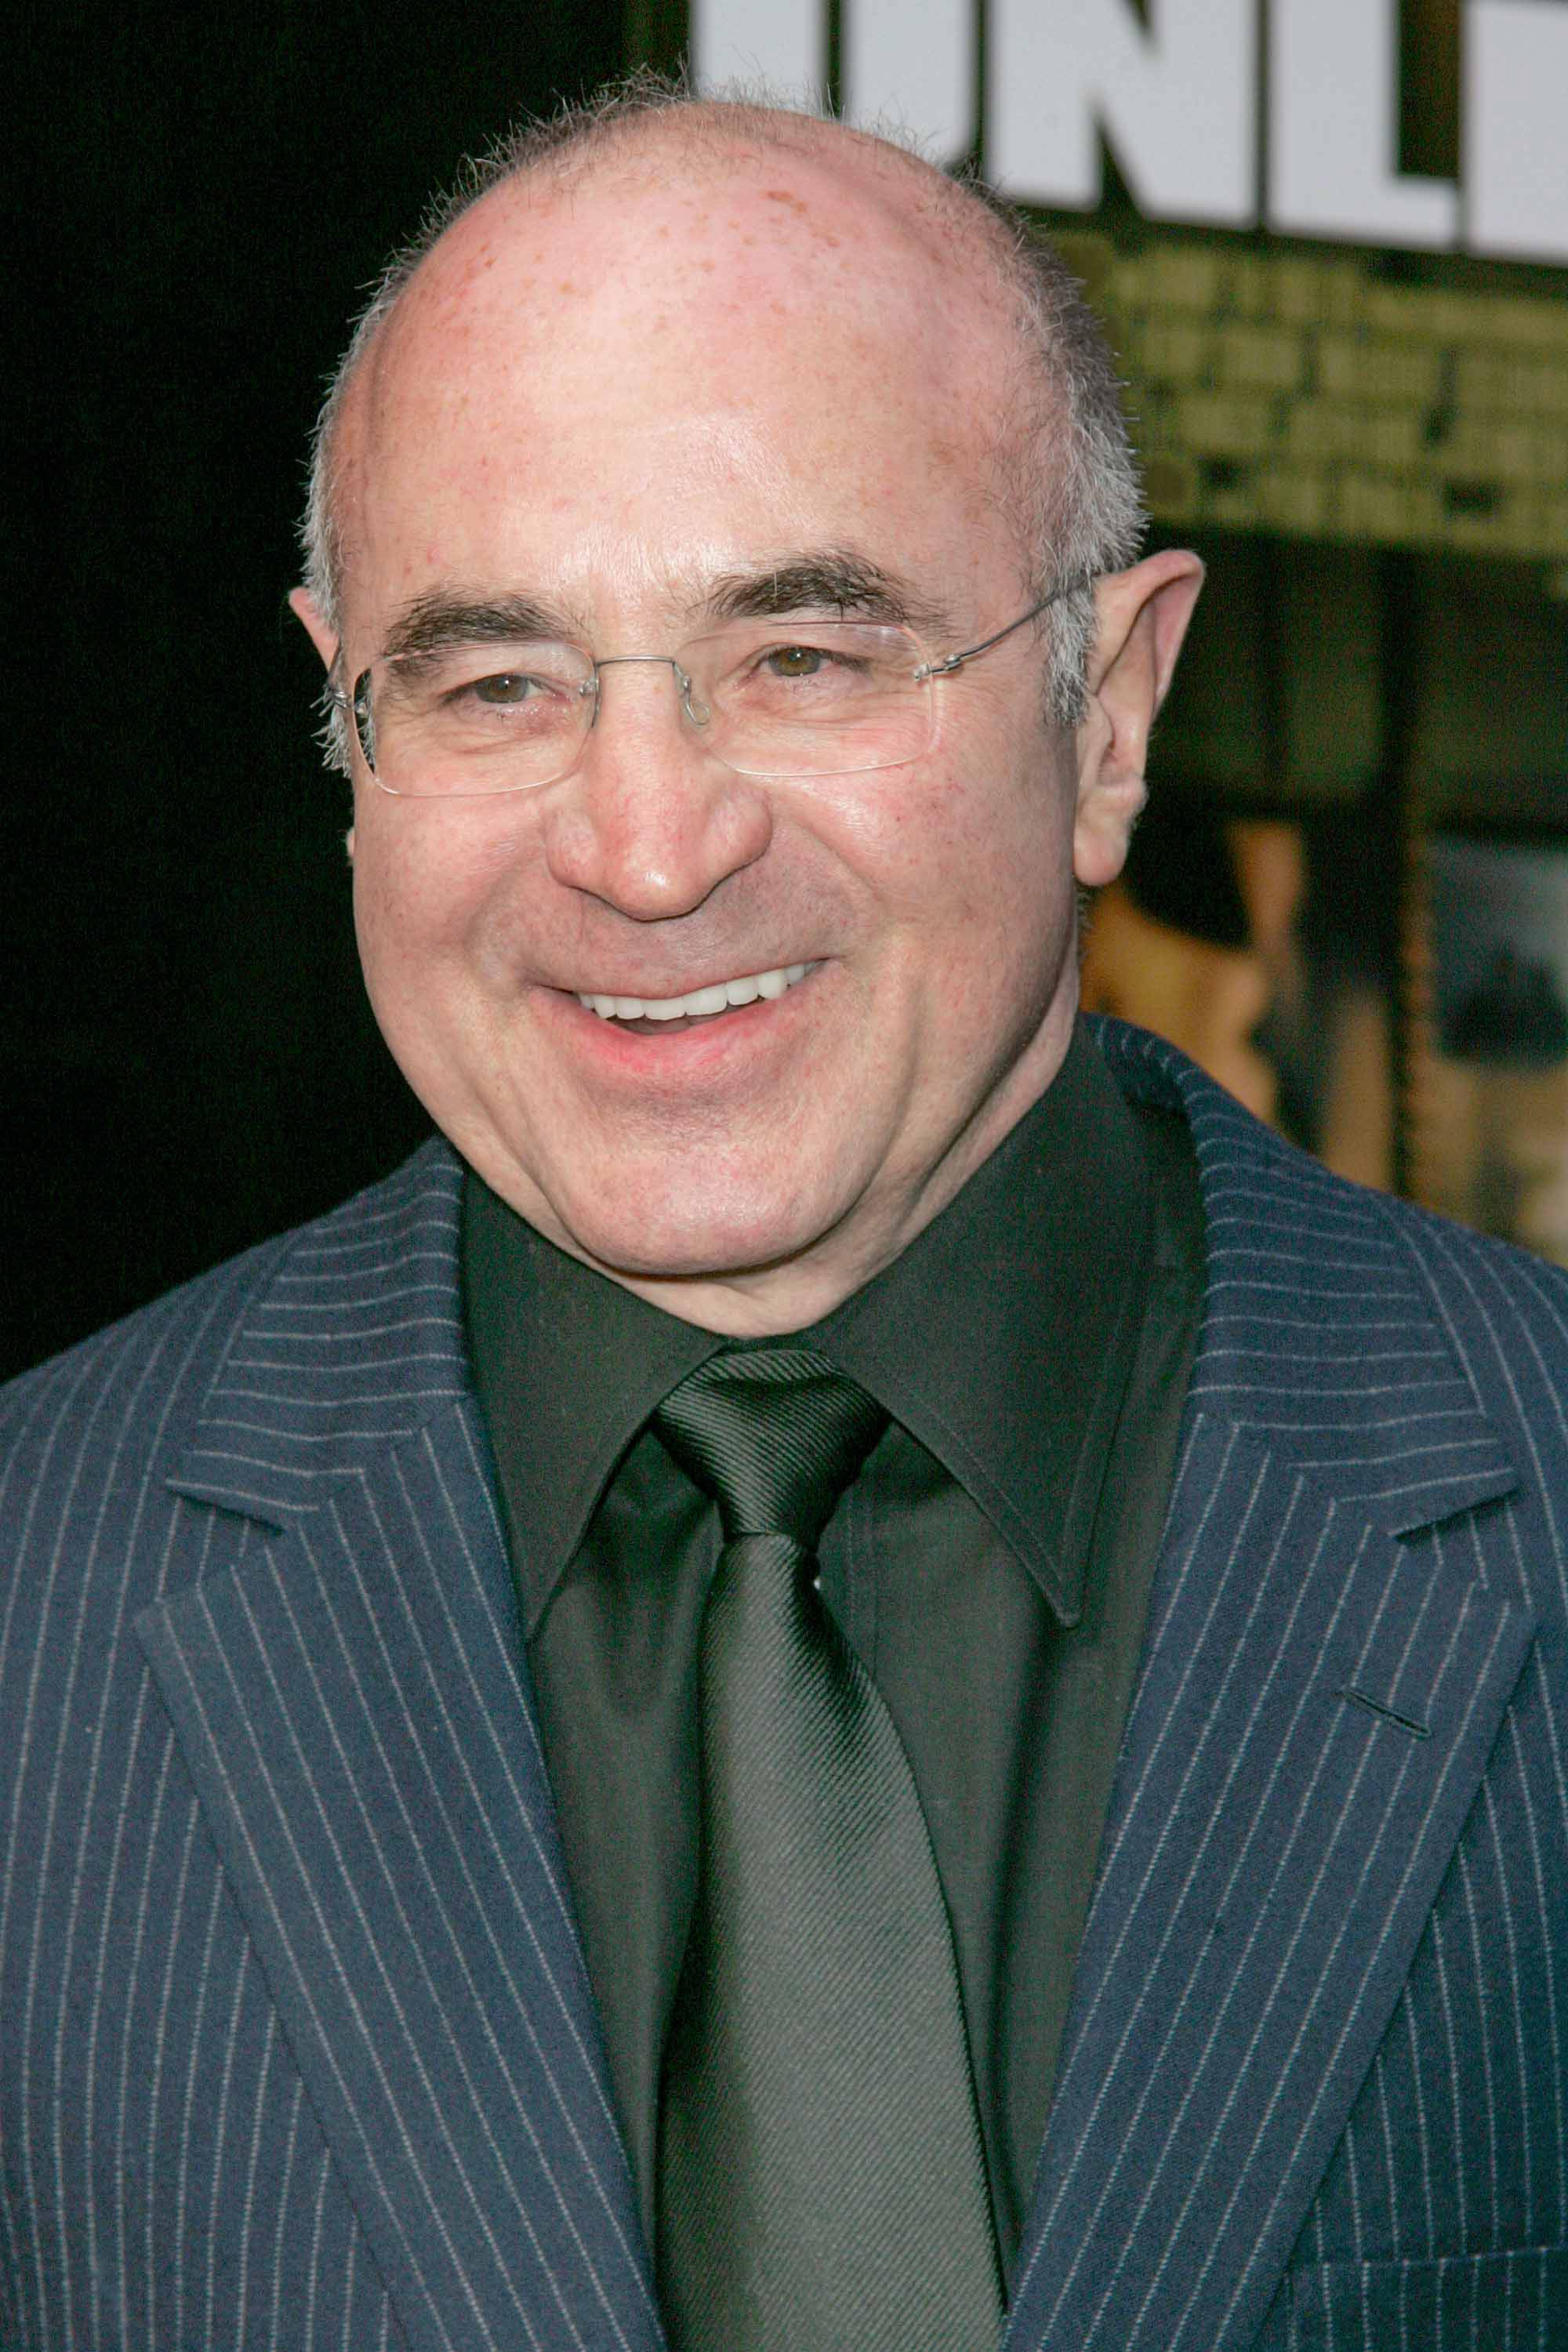 Bob Hoskins Snow White And The Huntsman Wiki Fandom